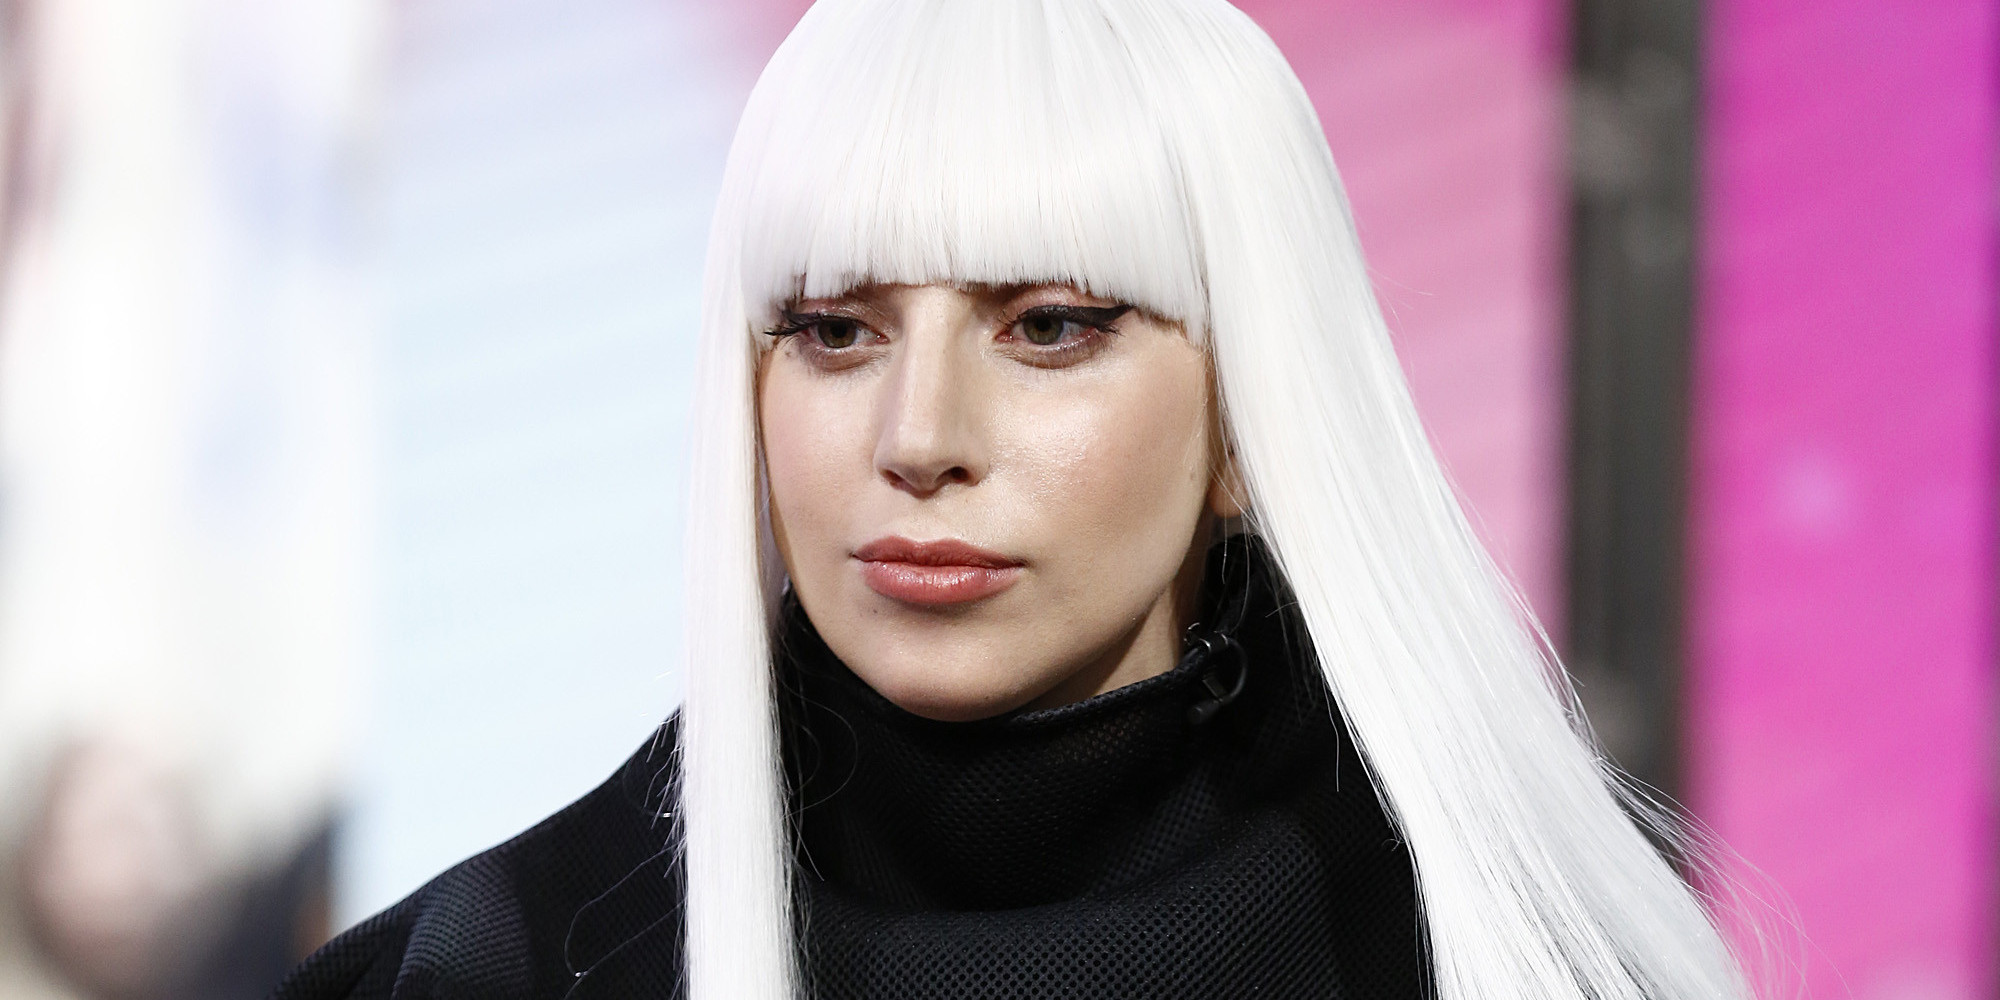 Donatella Lady Gaga Lyrics